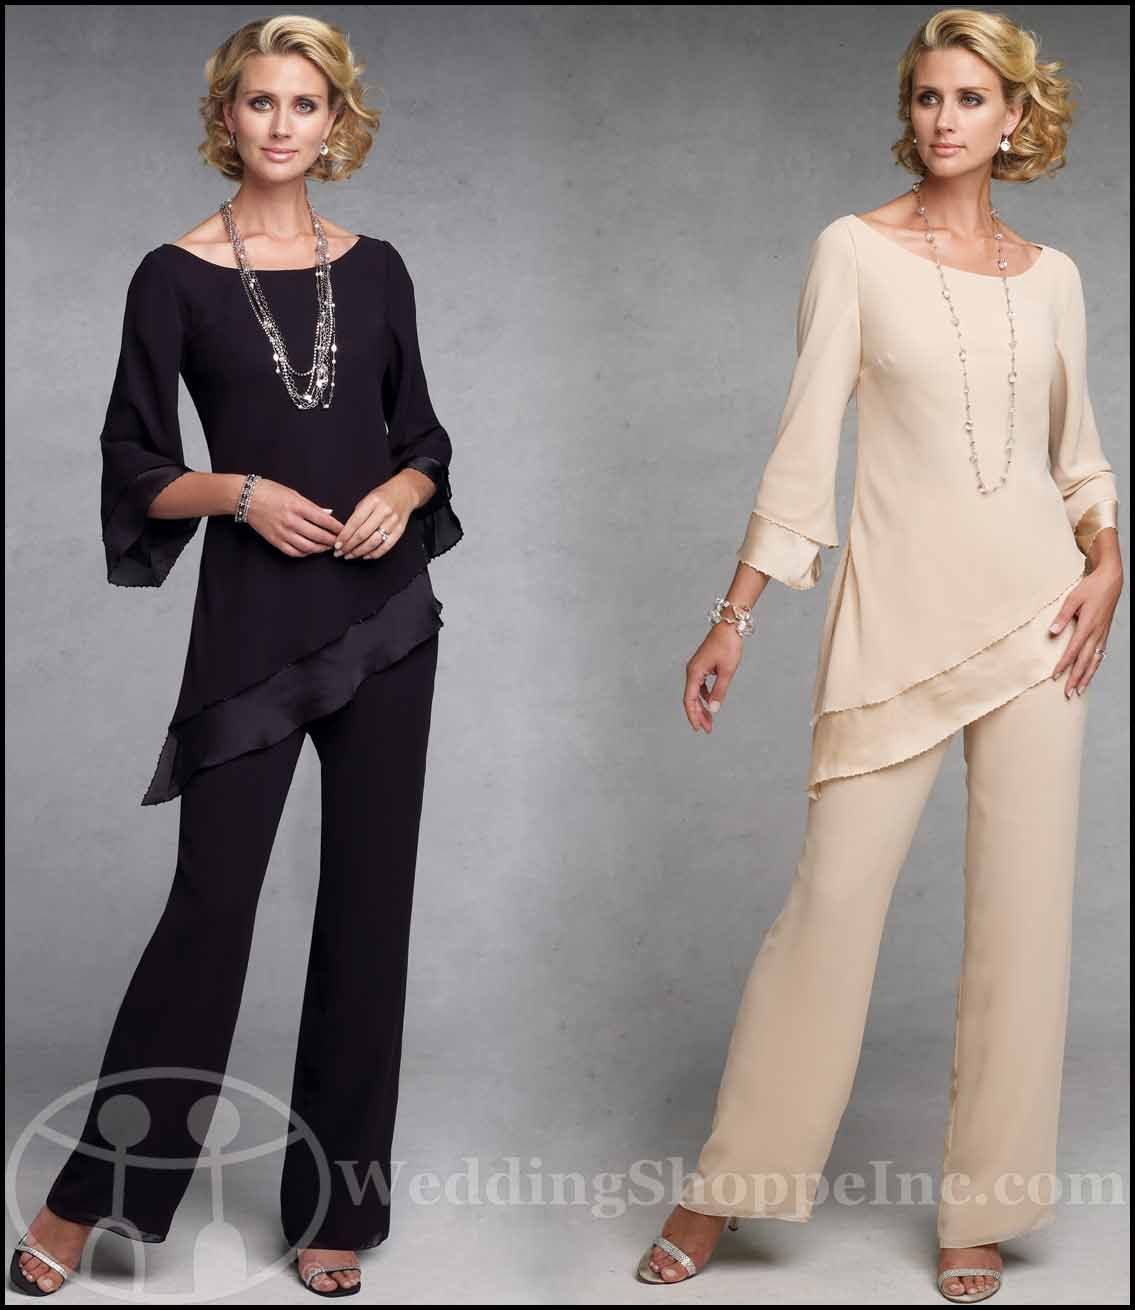 Mother of the Bride Pant Suits at Wedding Shoppe, Inc. | Wedding ...